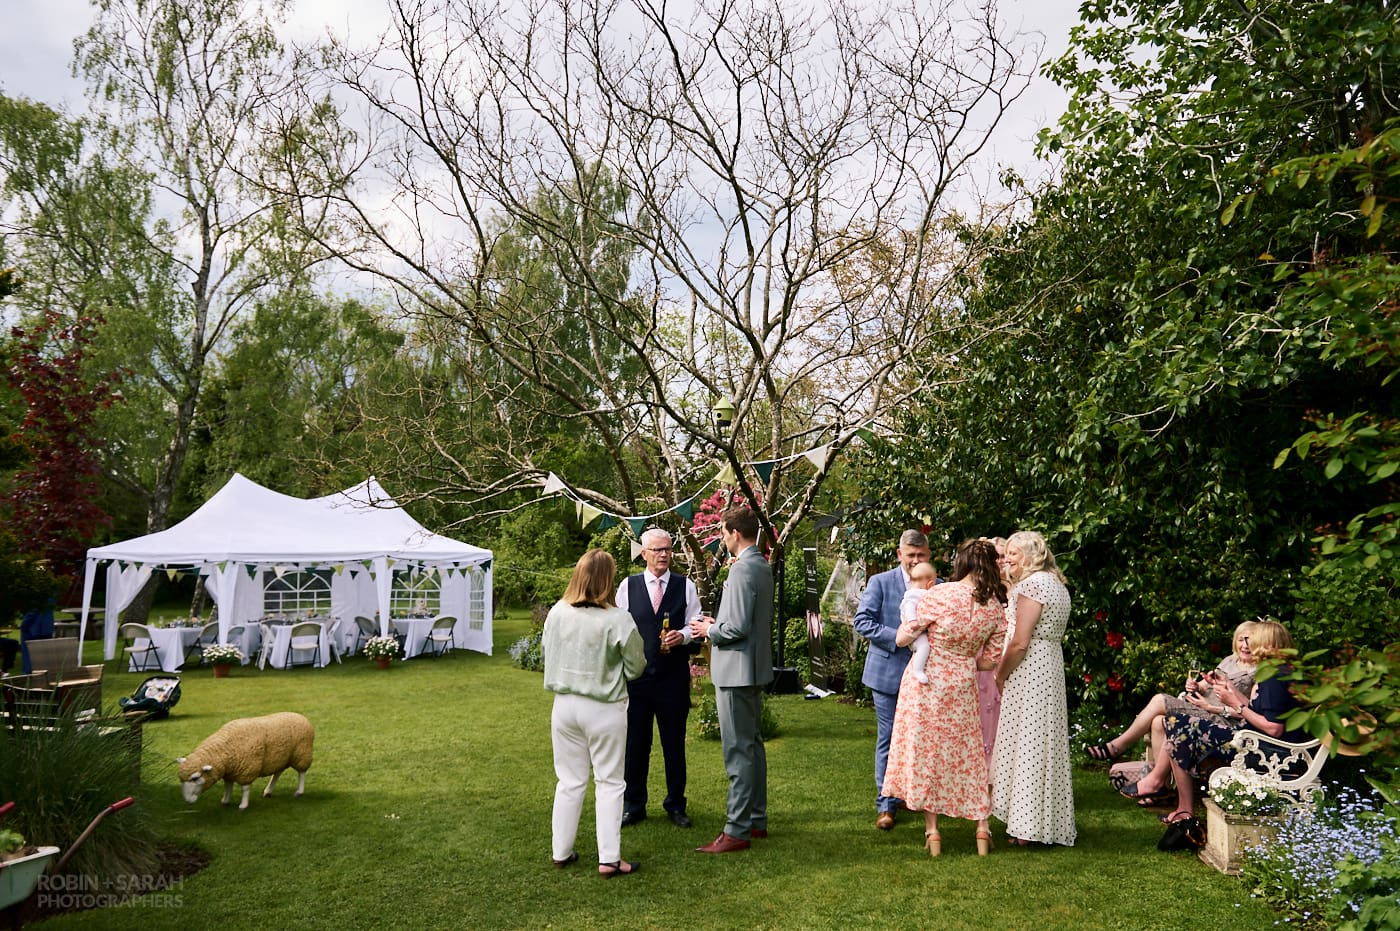 Small wedding reception taking place in home garden with small marquee